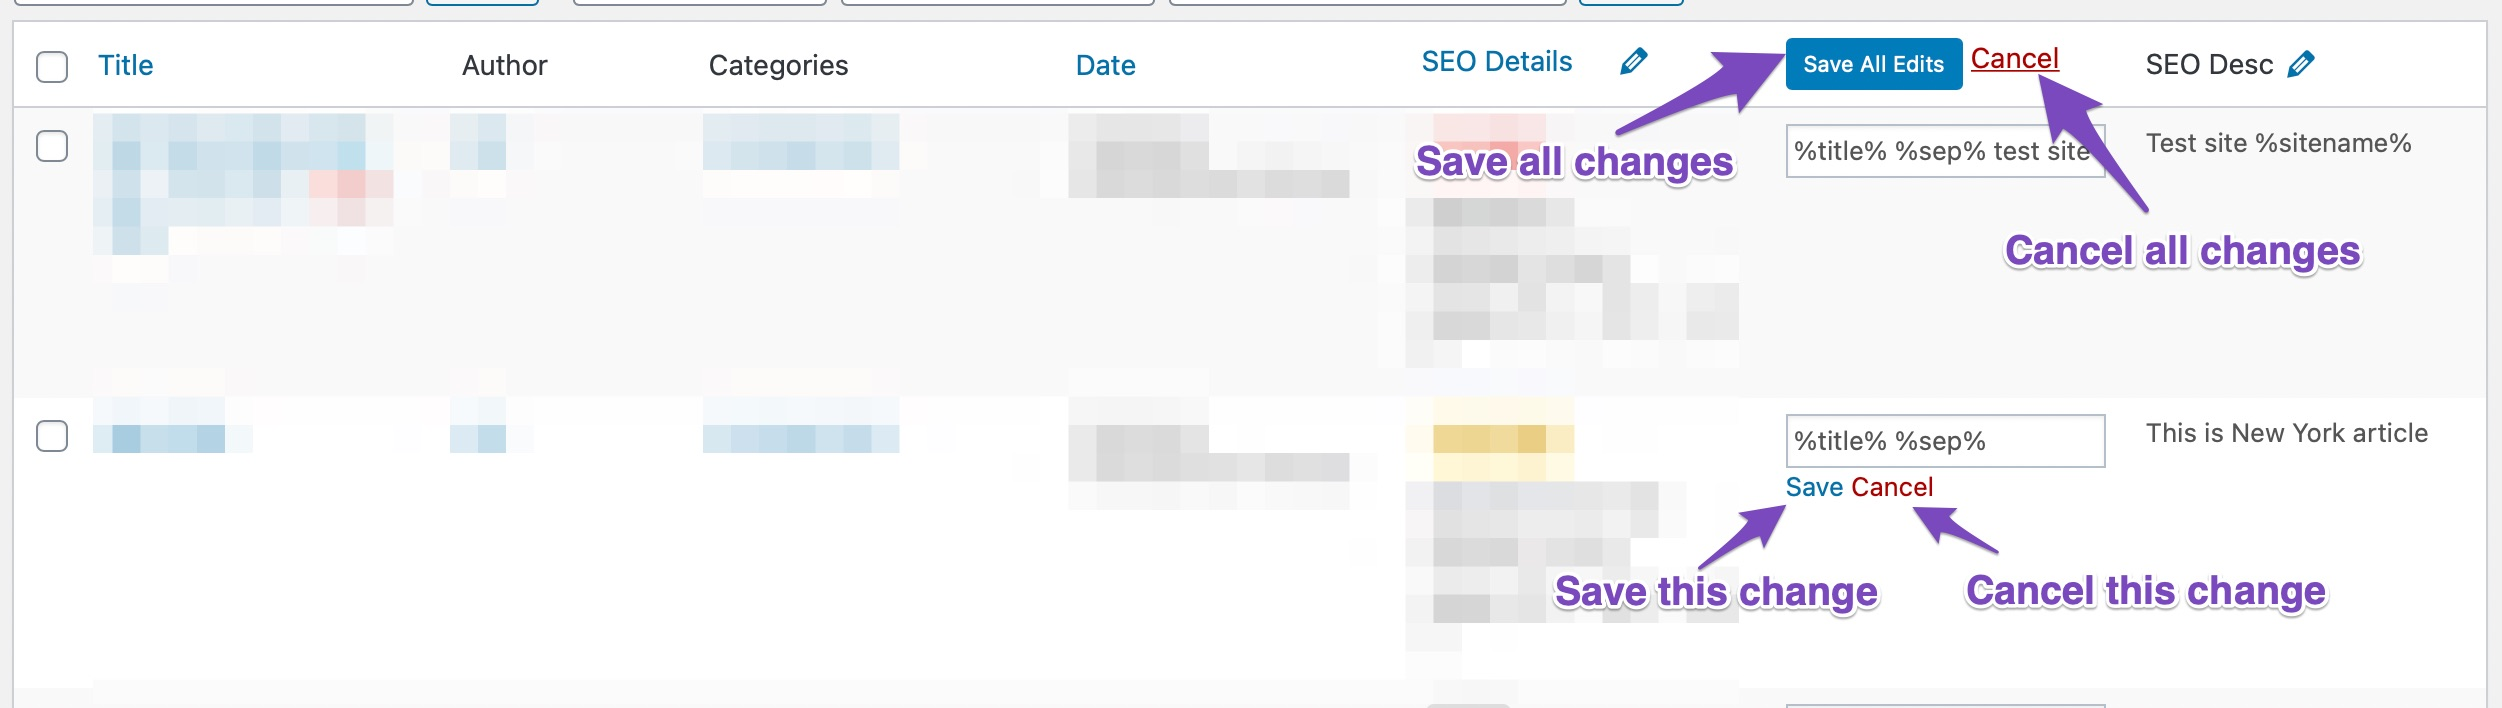 How To Save Changes To The SEO Field Quick Action